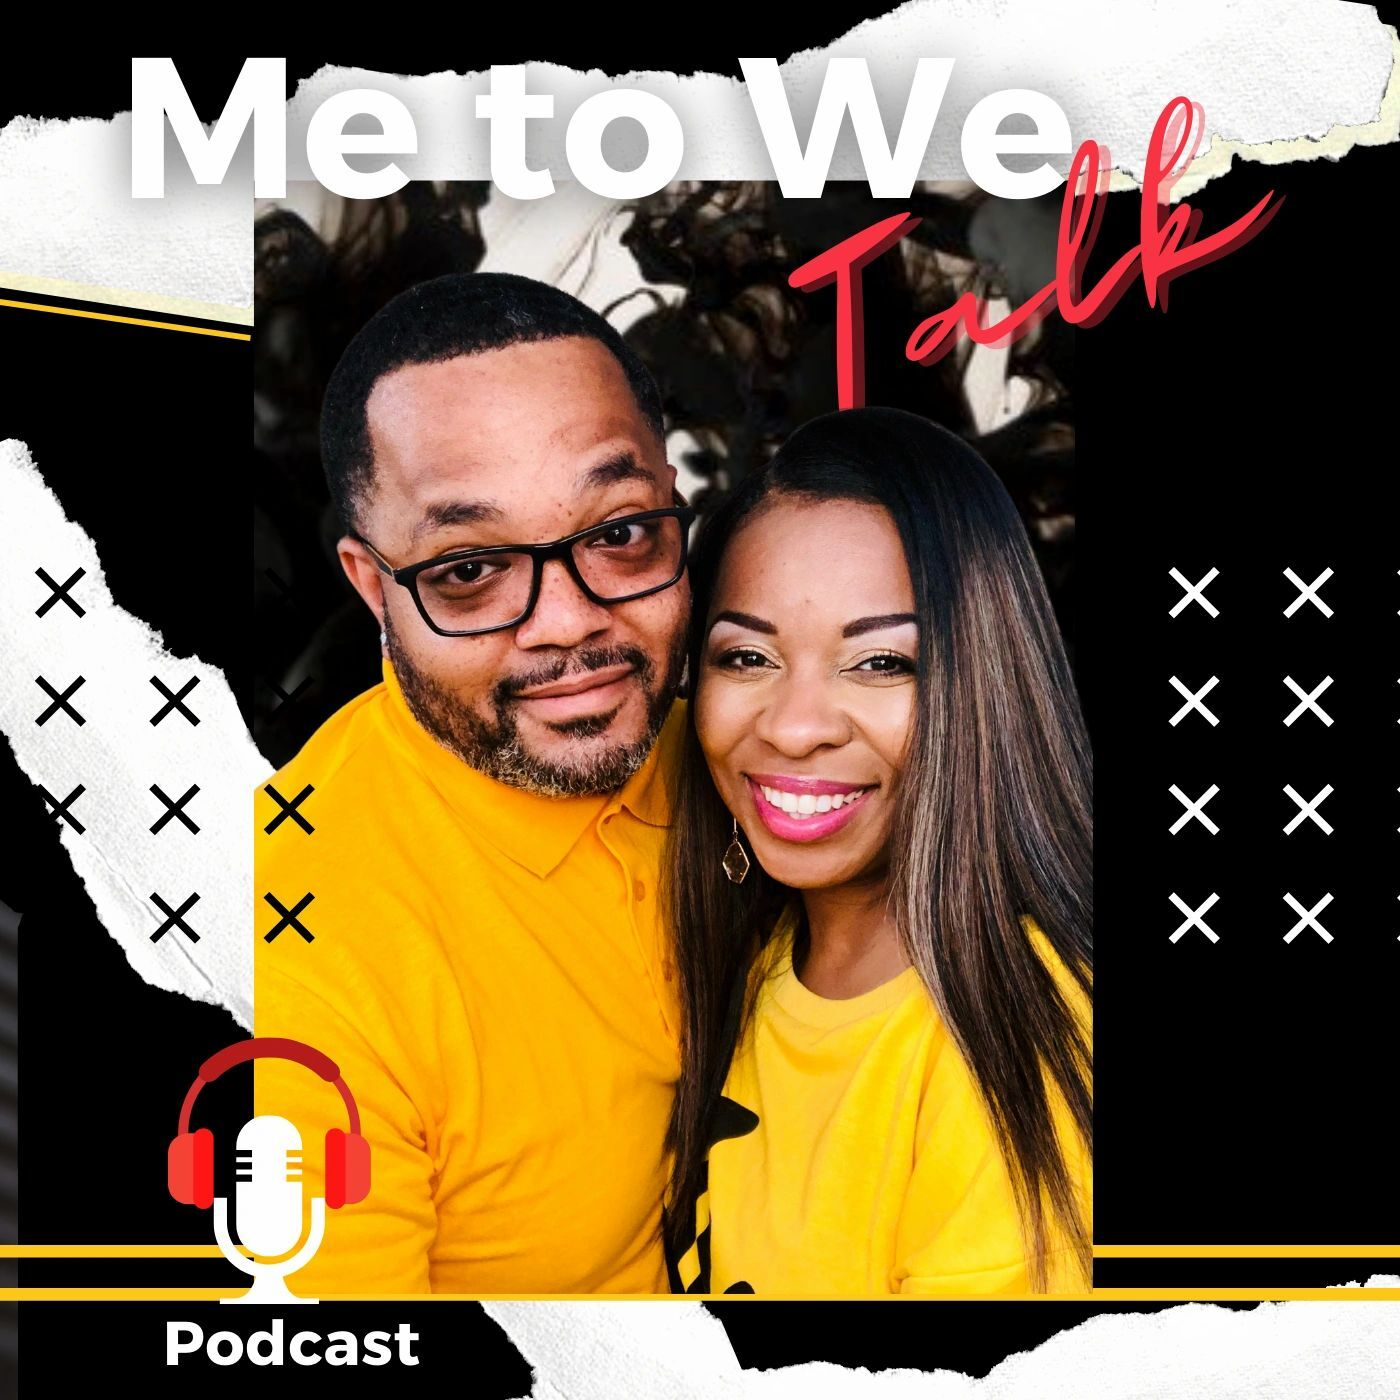 Episode 67: When You Love Someone You Let Them...GROW!